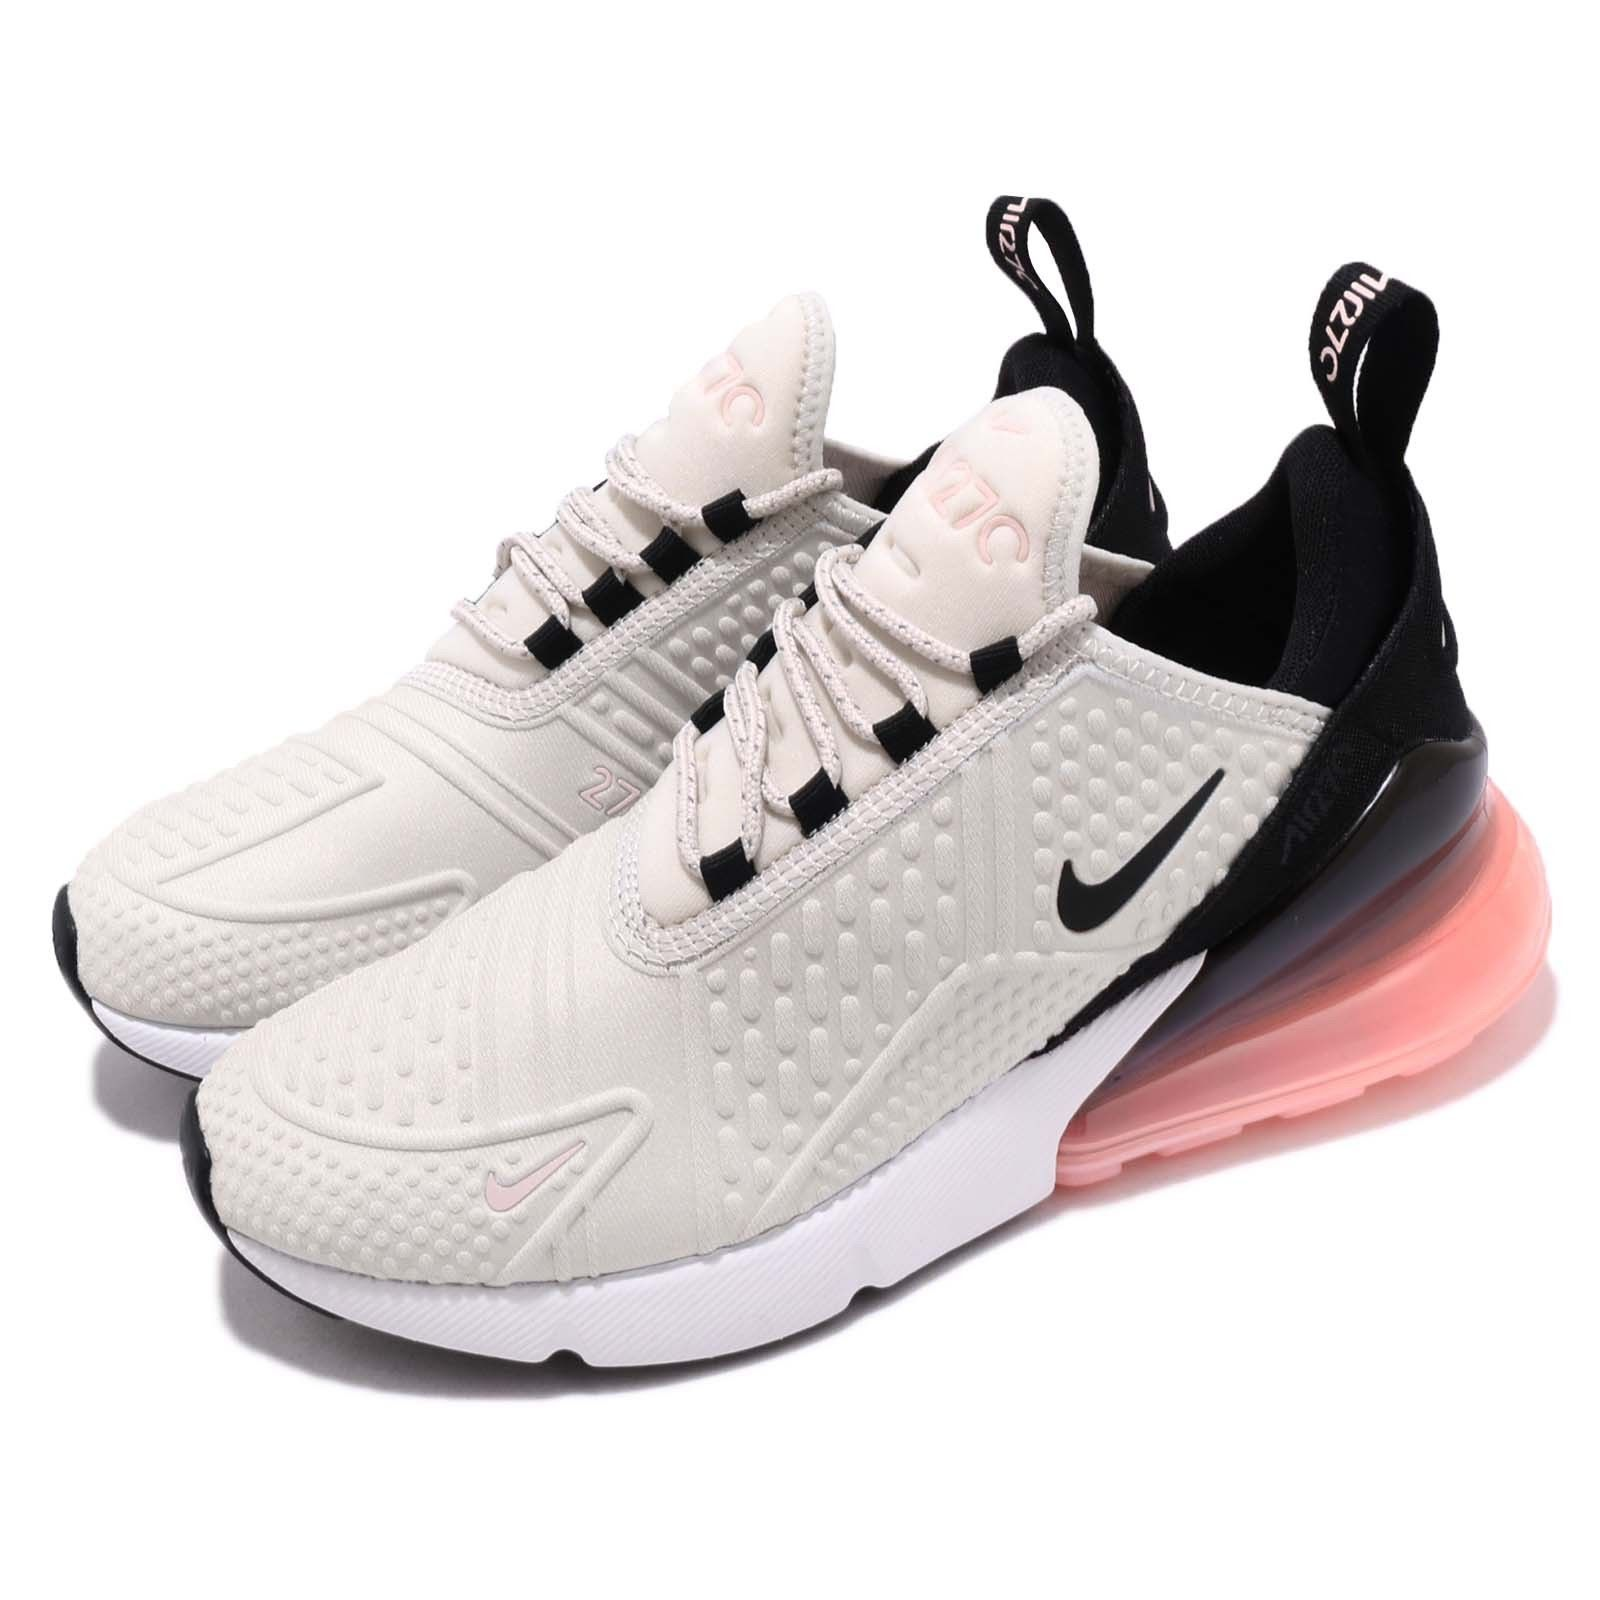 28ff1cfa55c Details about Nike Air Max 270 SE GS Pink Grey White Kid Youth Women ...